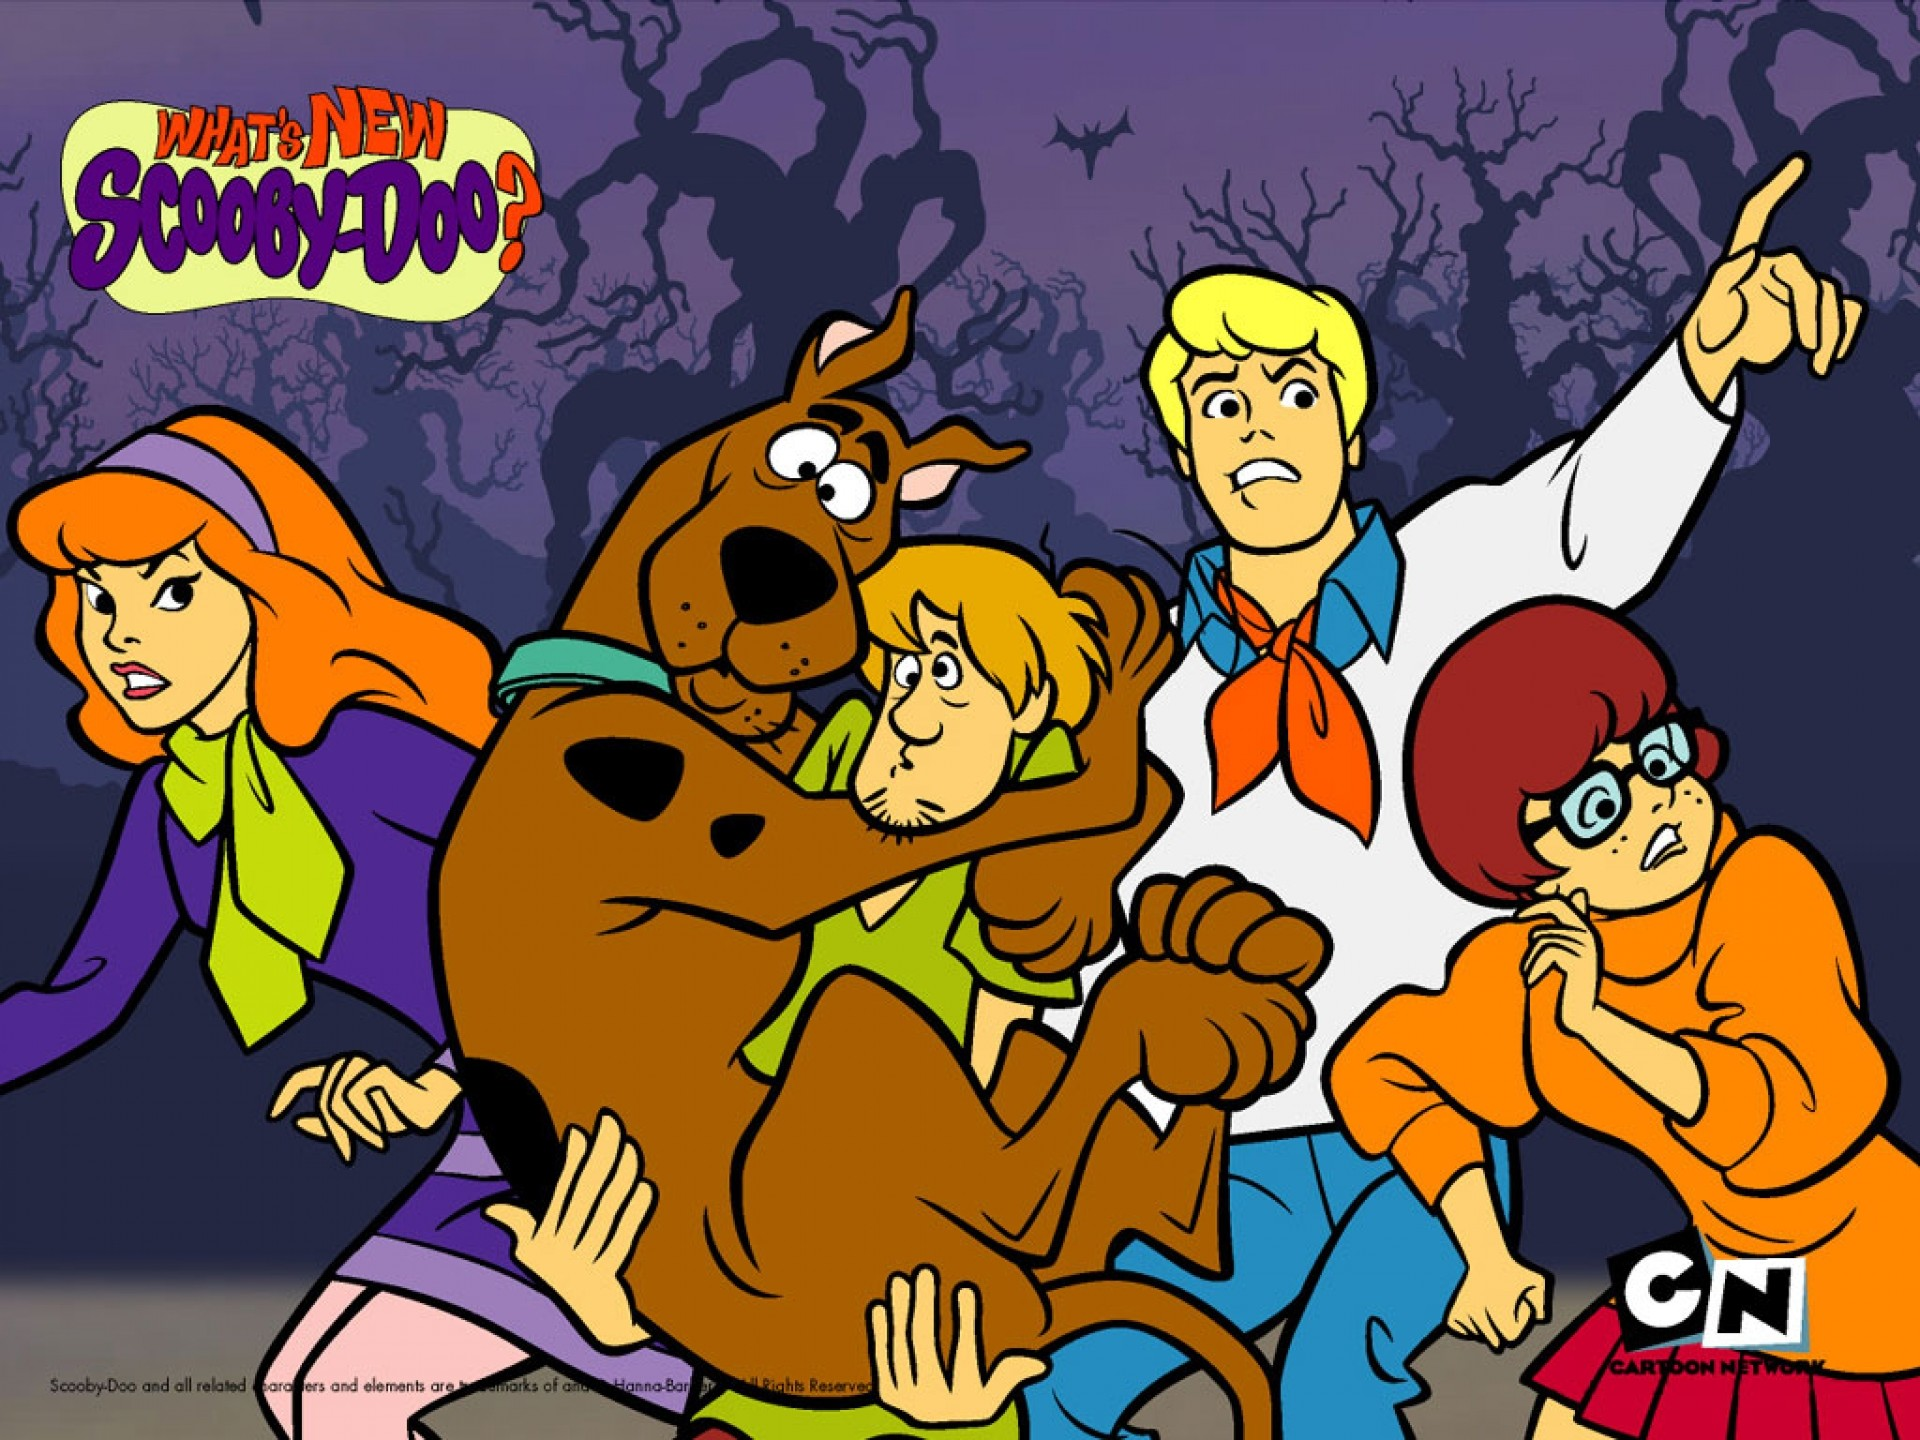 1920x1440 scooby doo | Scooby doo pictures wallpapers free scooby doo downloads  cartoon